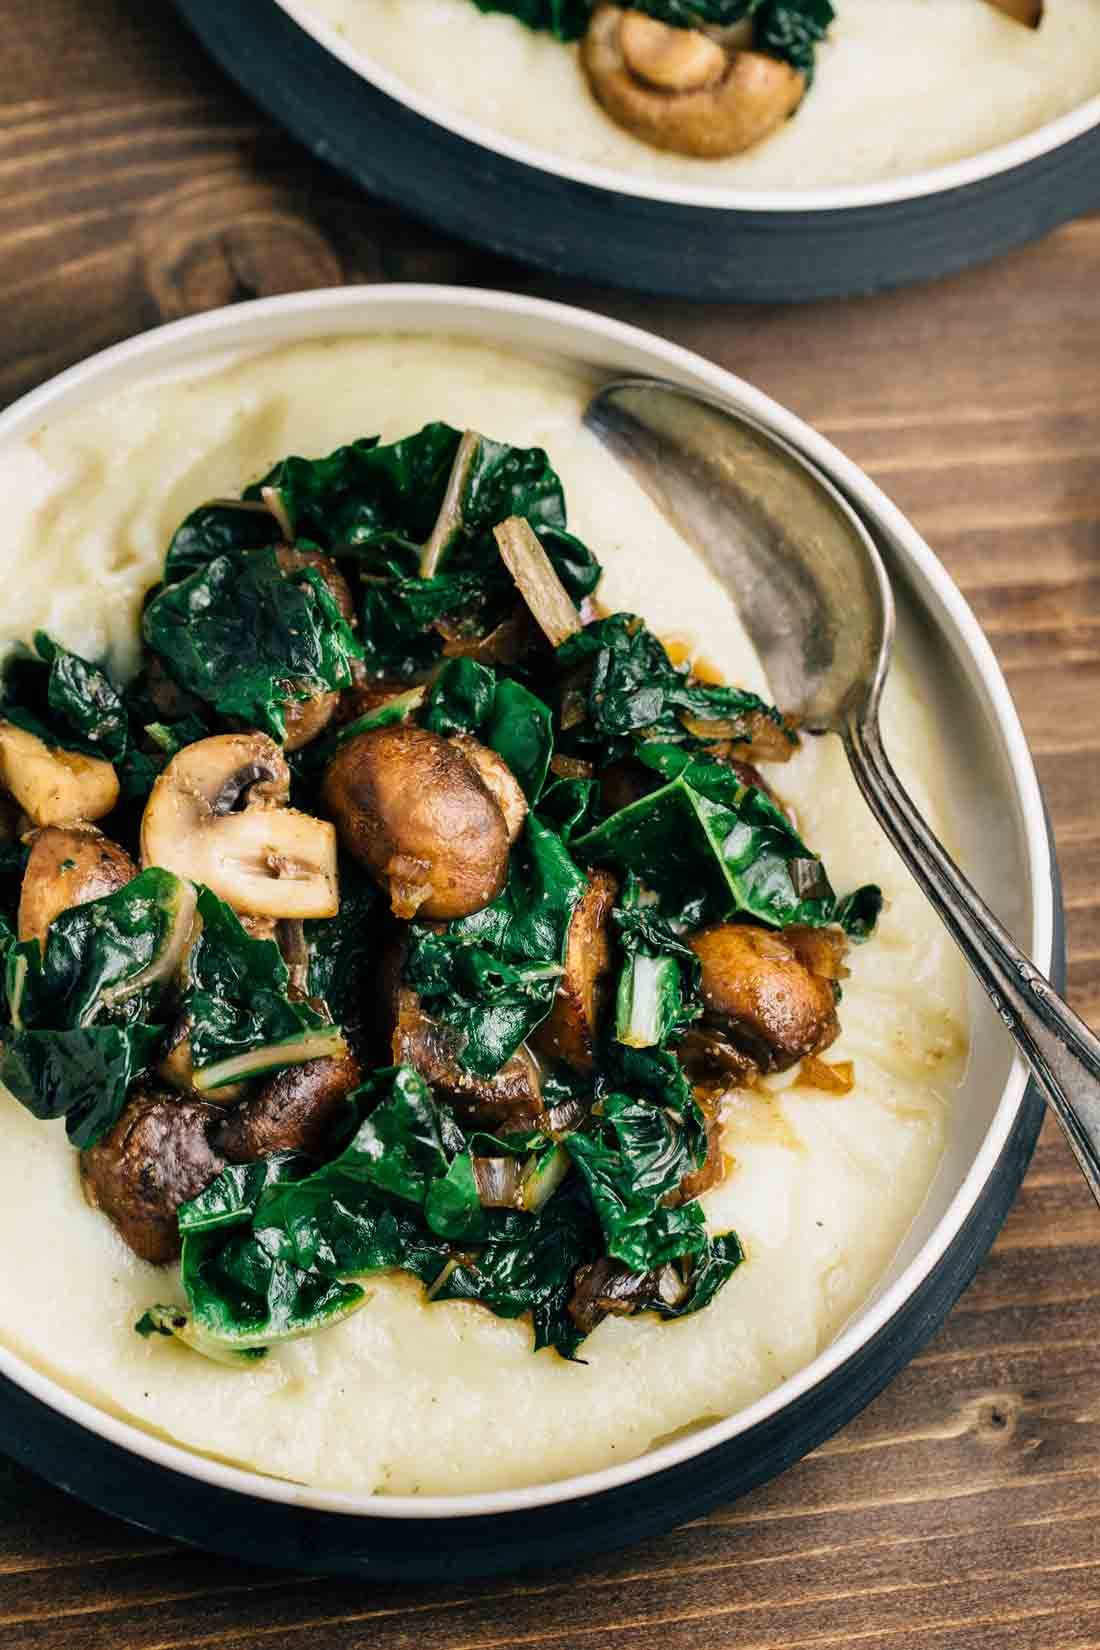 Cauliflower Puree with Sautéed Mushrooms | via veggiechick.com #vegan #glutenfree